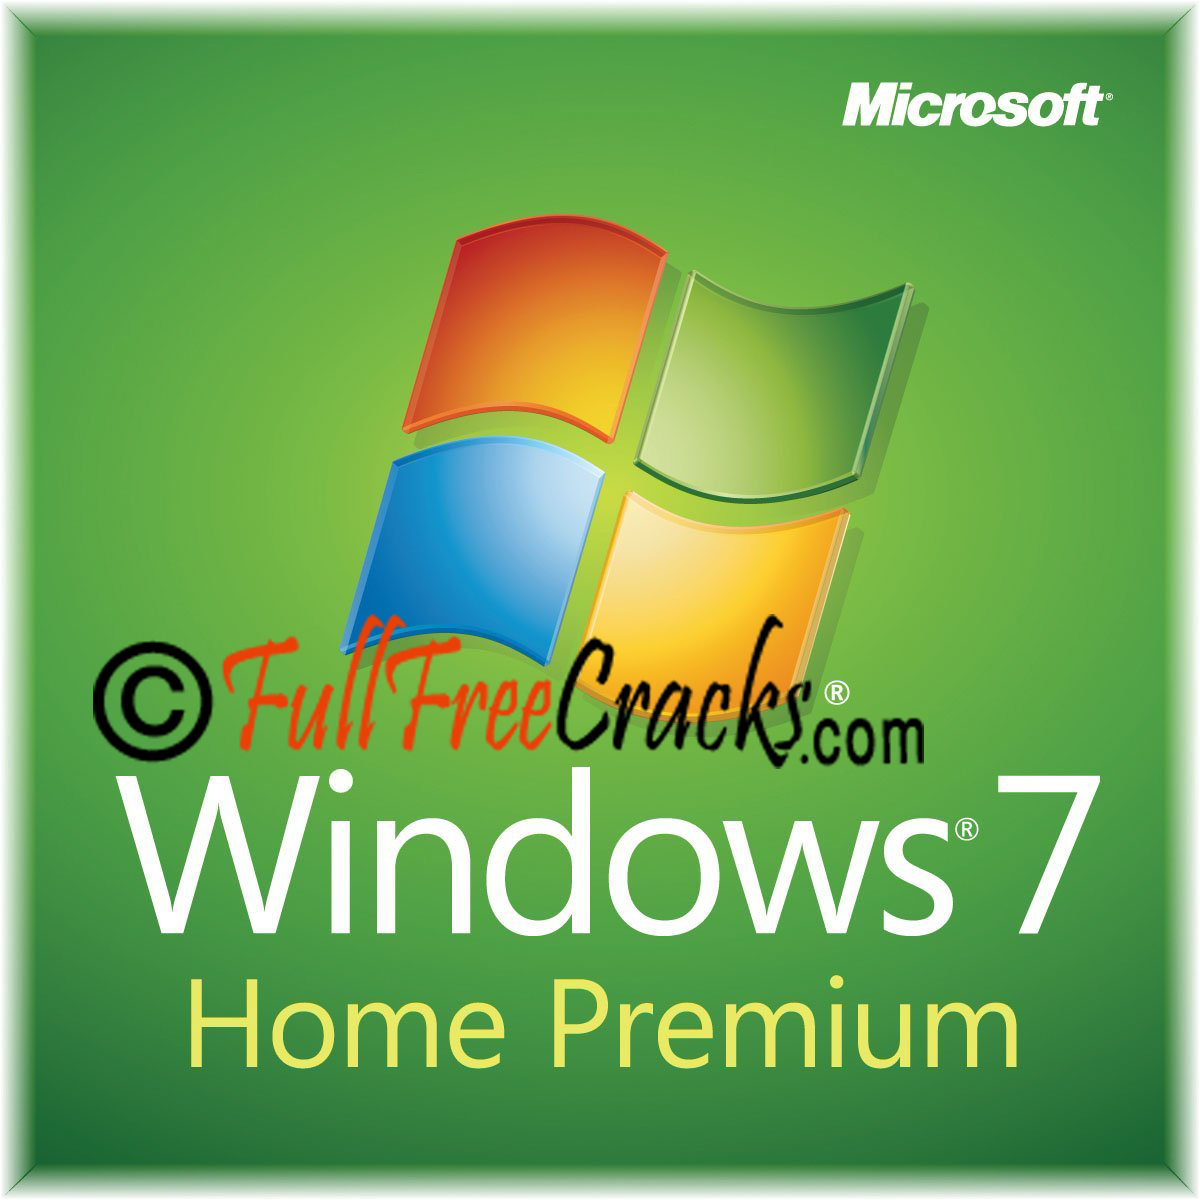 Windows 7 Home Premium Product Key 64Bit 32Bit Free Download